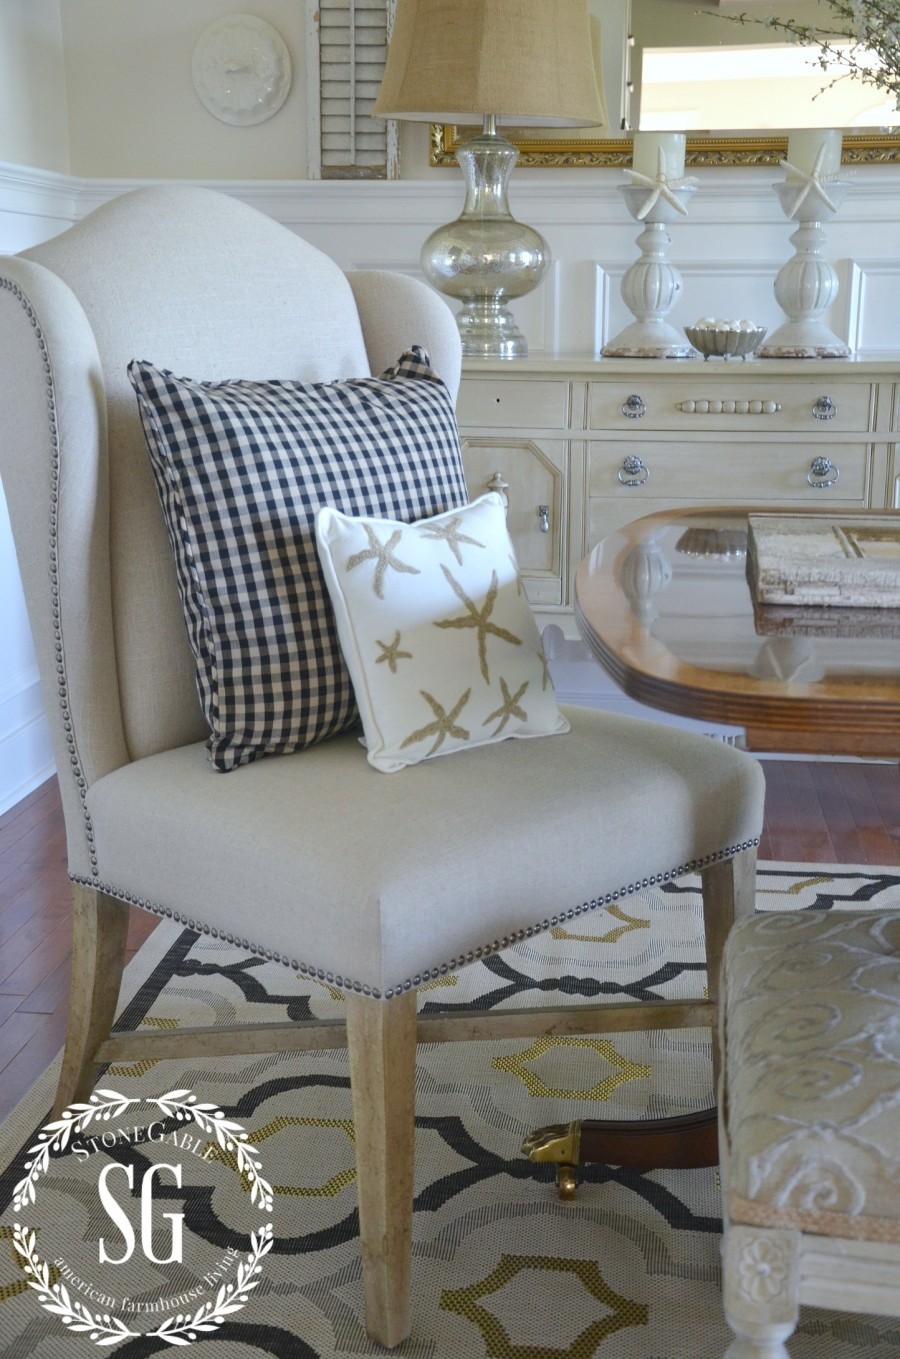 SUMMER HOME TOUR-Dining room-chairs-starfish-pillows-stonegableblog.com